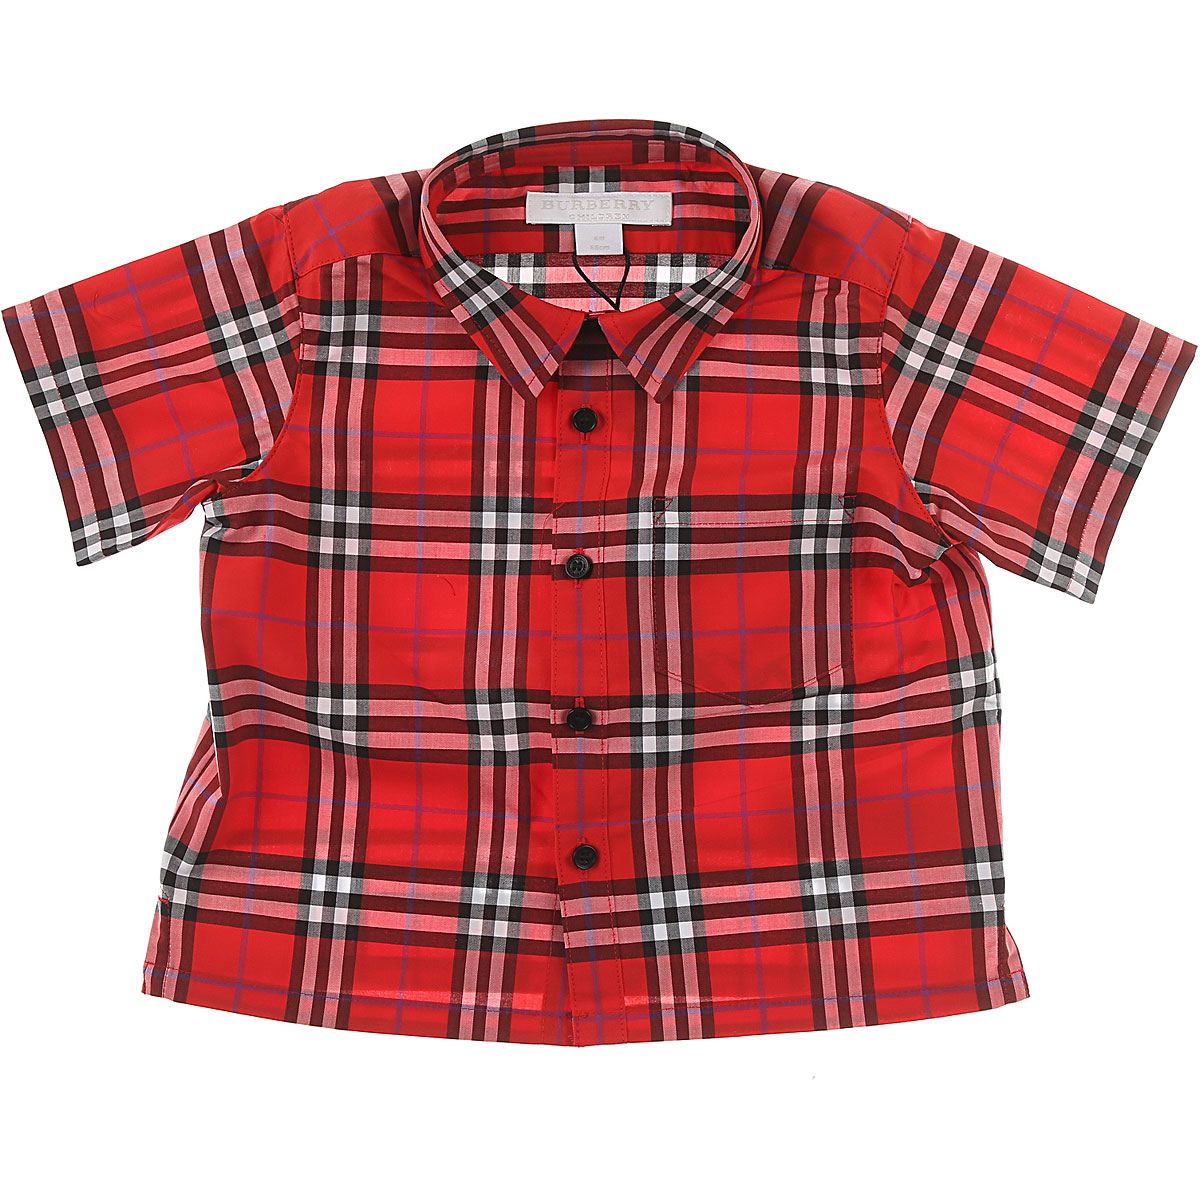 Image of Burberry Baby Shirts for Boys, Red, Cotton, 2017, 18M 2Y 3Y 6M